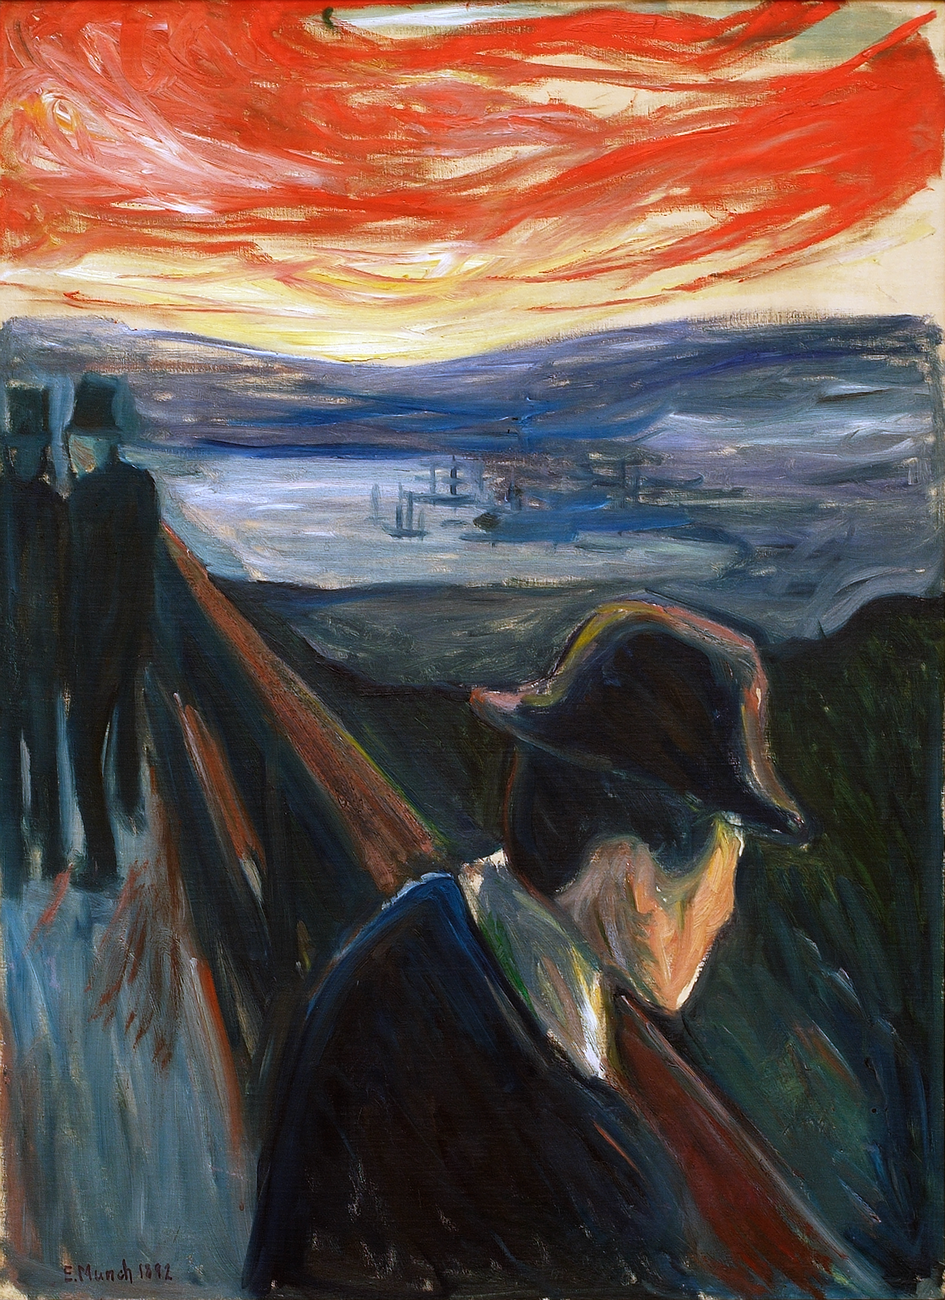 Artwork image, Munch, Sick Mood at Sunset: Despair